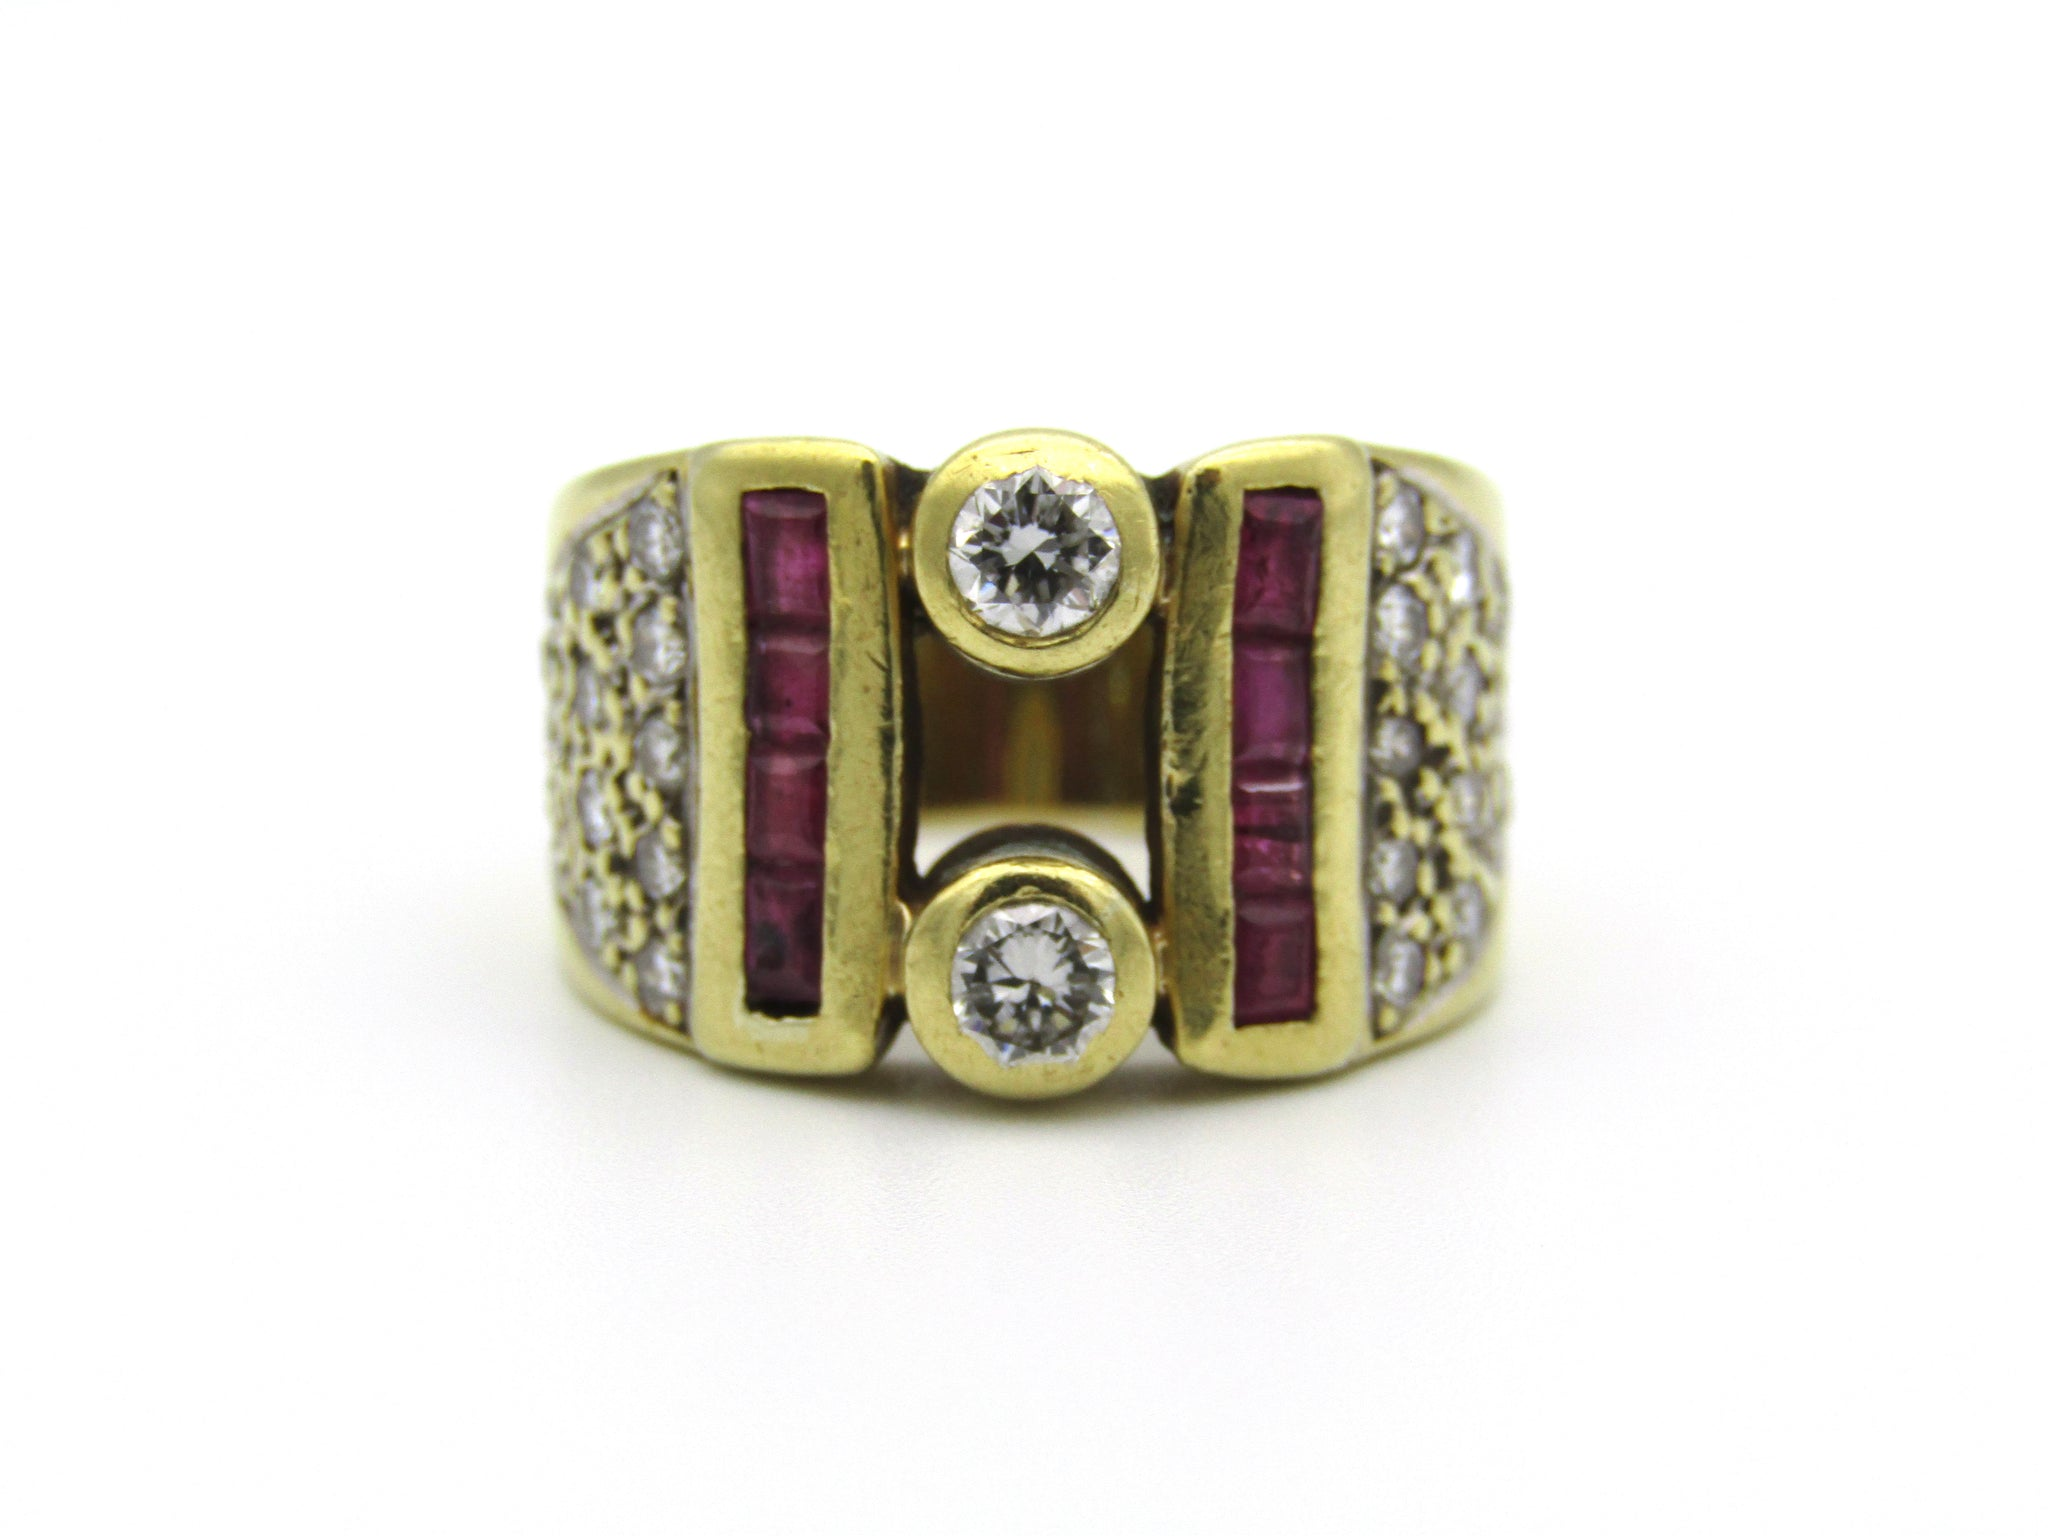 18kt gold diamond and ruby ring.